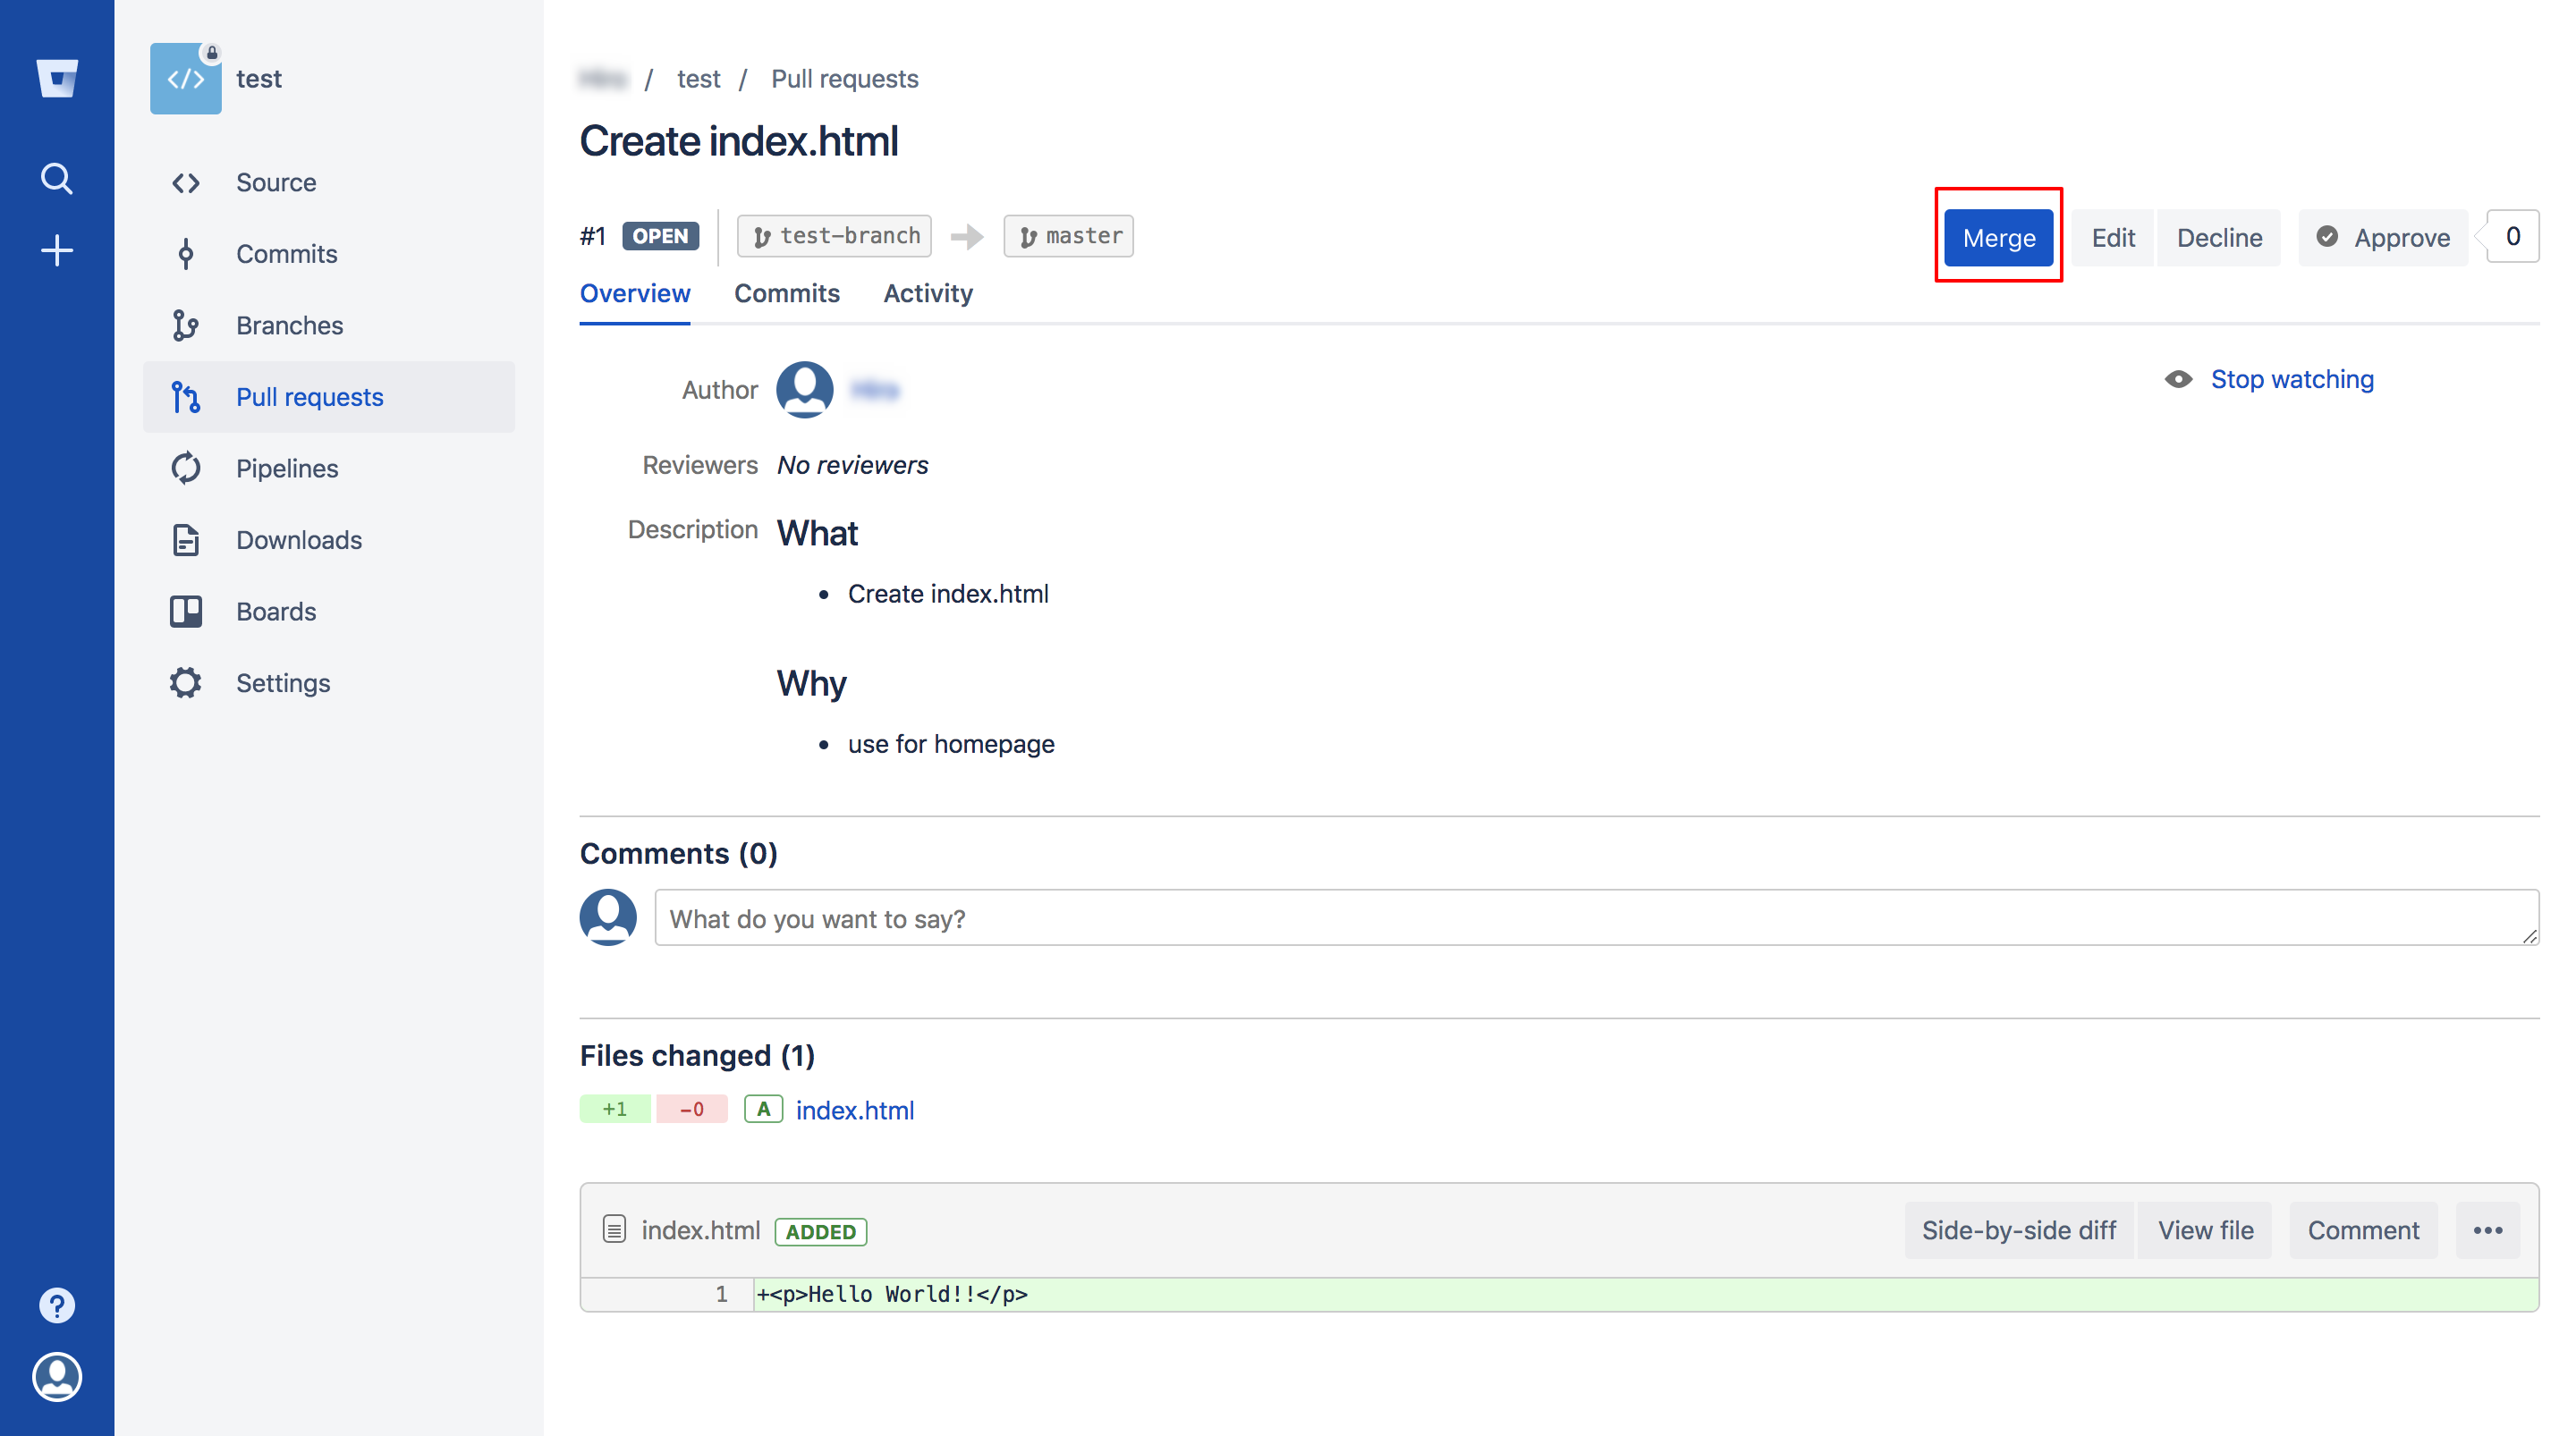 nago3   test   Pull request  1  Create index html — Bitbucket.png